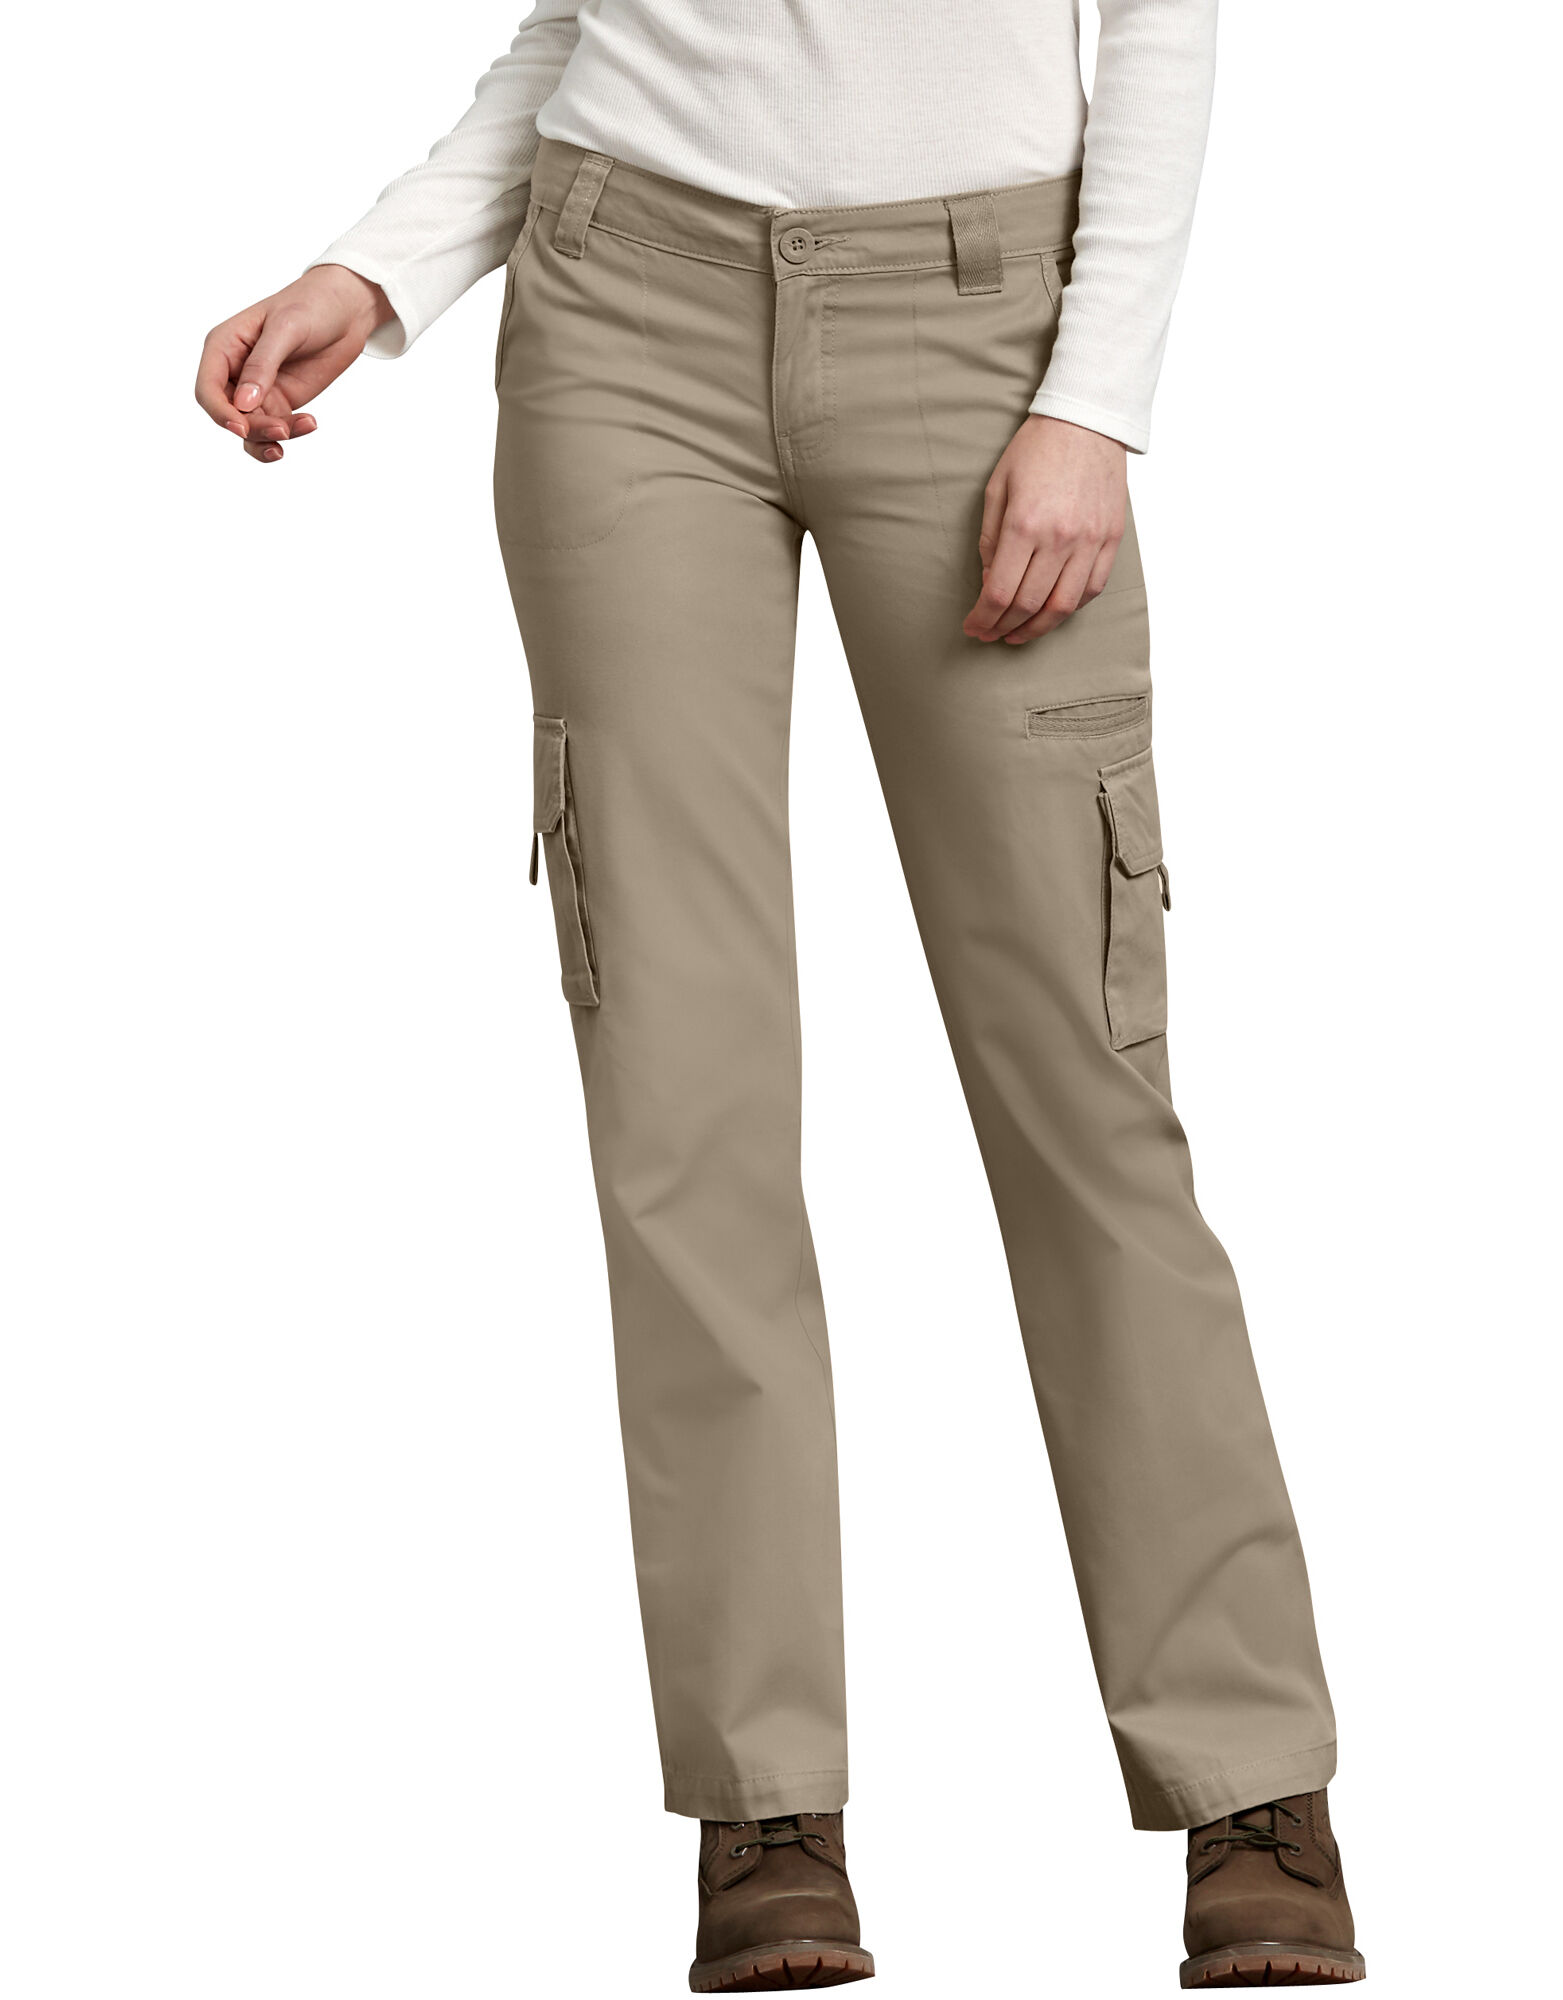 The cargo pant collection for women offer rich colors in styles such as cropped leg, flare, straight leg, and more. Great with heels or flats, cargo pants add personality to any look that will get you noticed.